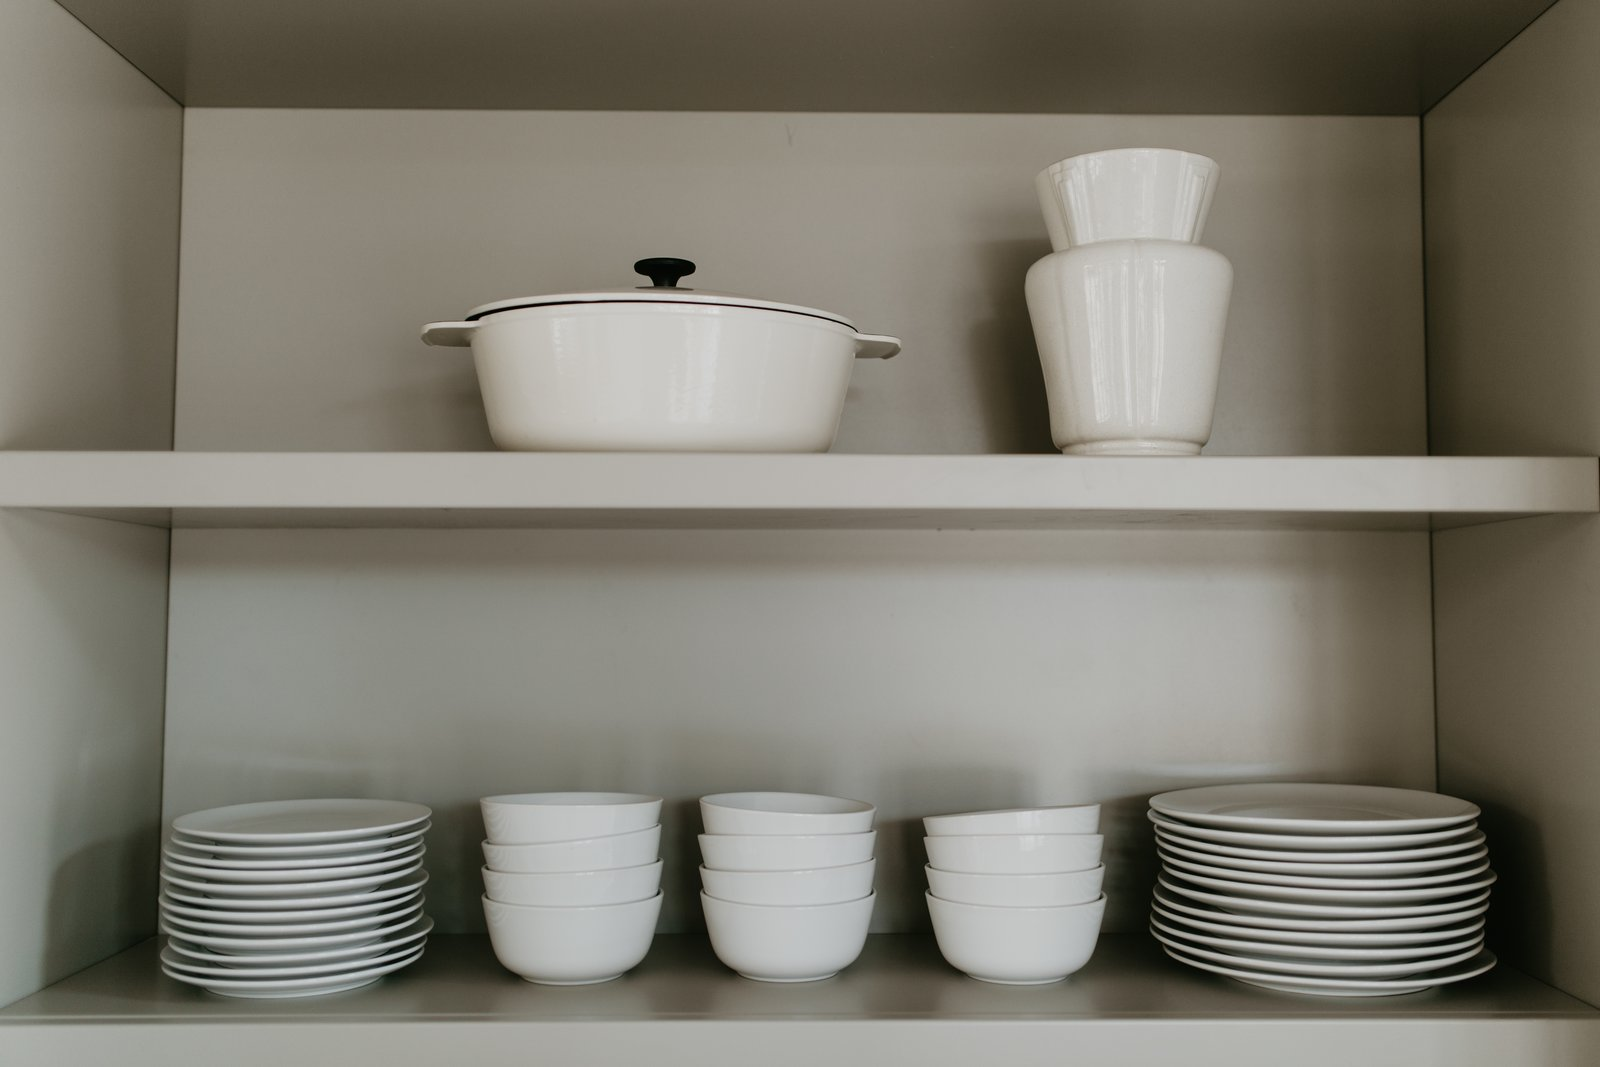 Kitchen Open shelving in kitchen  North Shore #7 by Hygge Supply